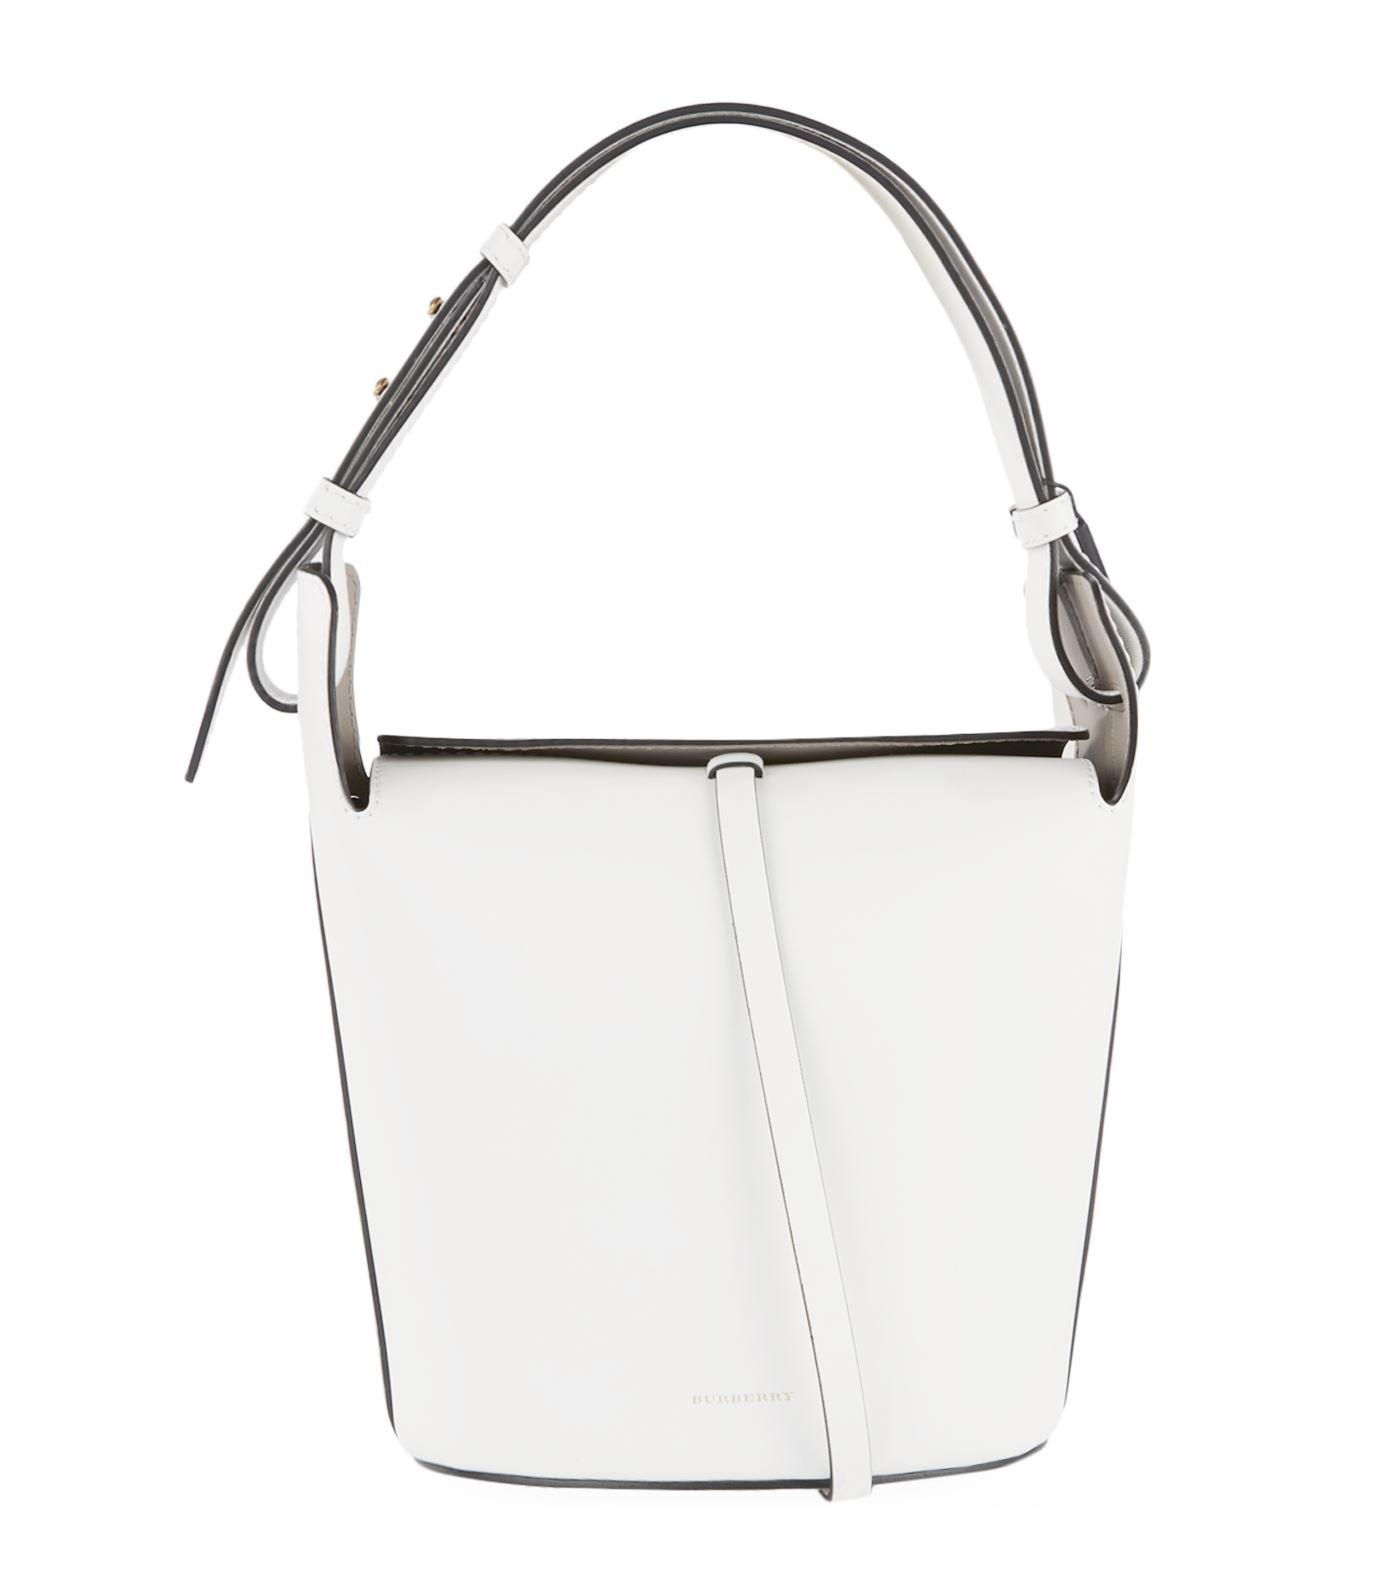 The Small Leather Bucket Bag - White Burberry Cheap Classic Purchase Sale Online Cool Shopping veR47BtpW7